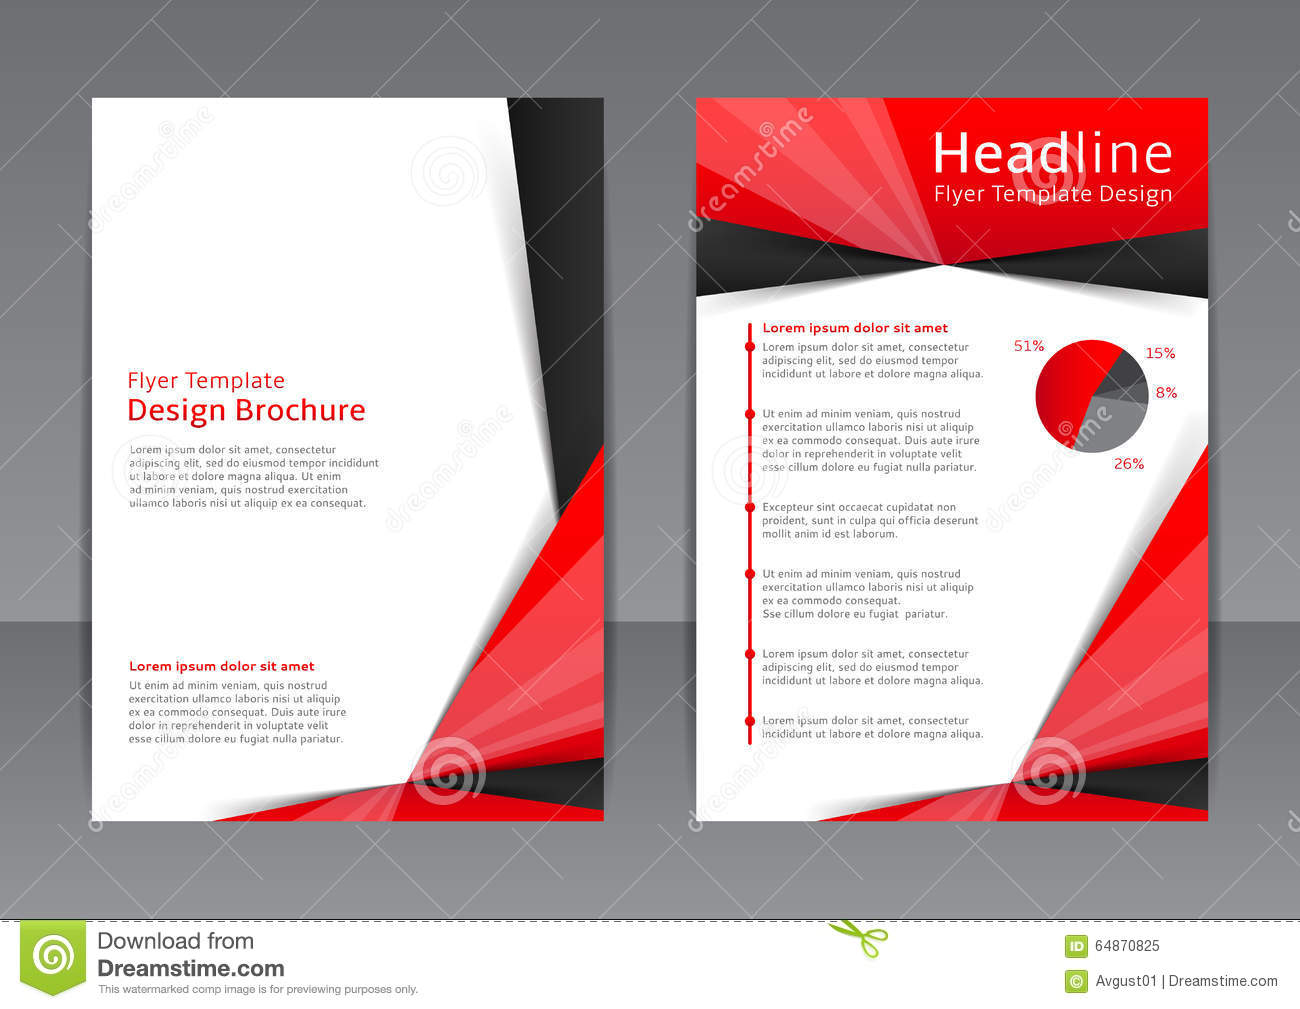 Coreldraw brochure template download happened ruin cf for Coreldraw brochure templates